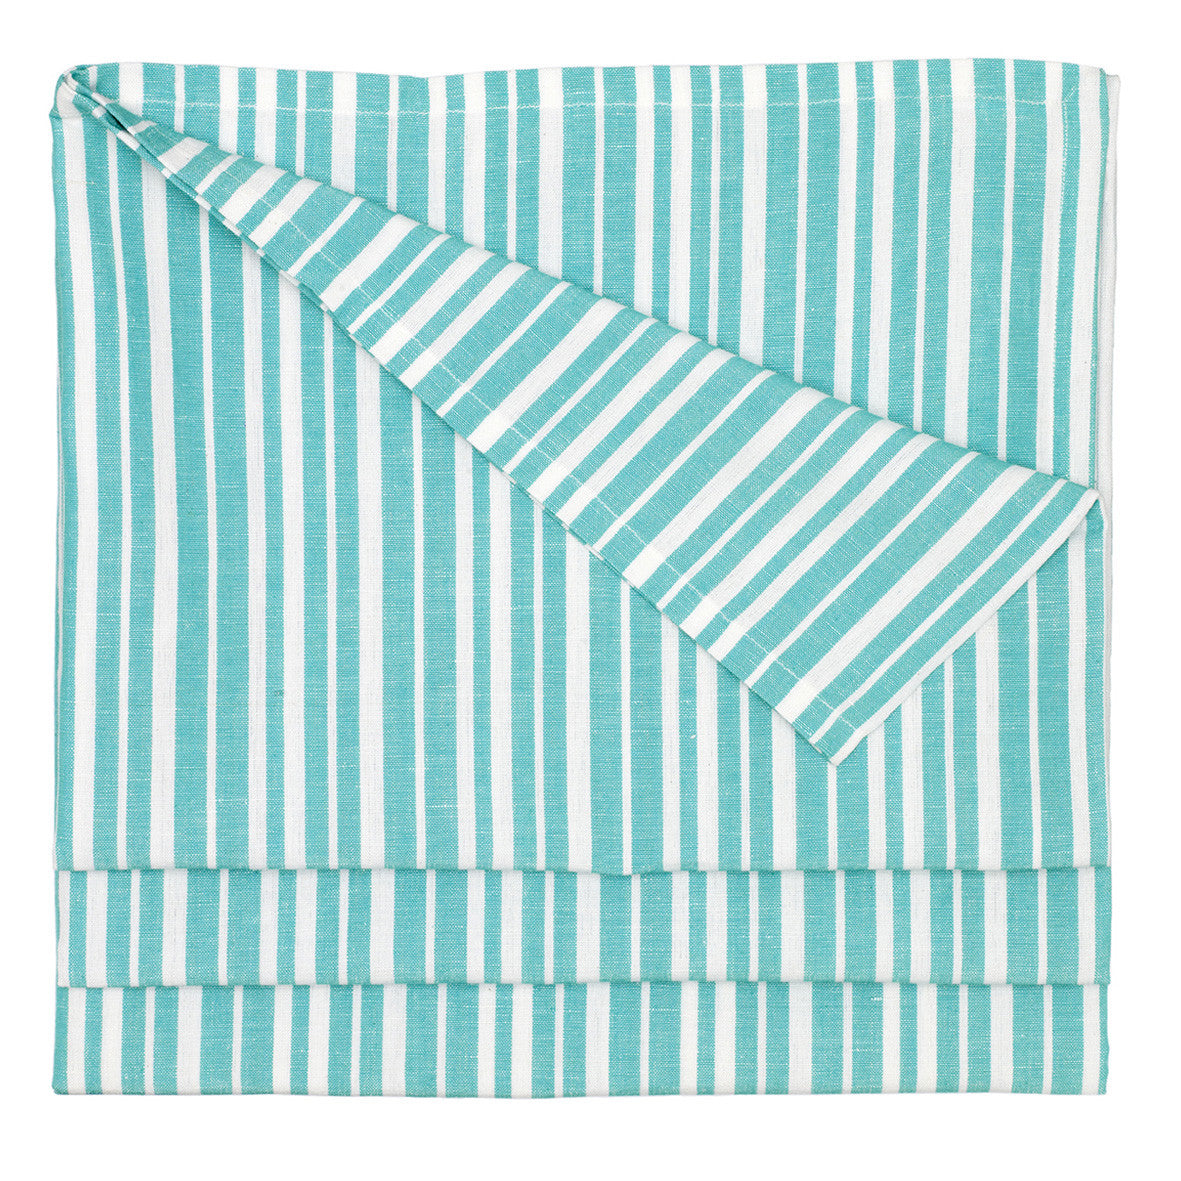 Palermo Ticking Stripe Cotton Linen Tablecloth in Pacific Turquoise Blue Ships from Canada (USA)